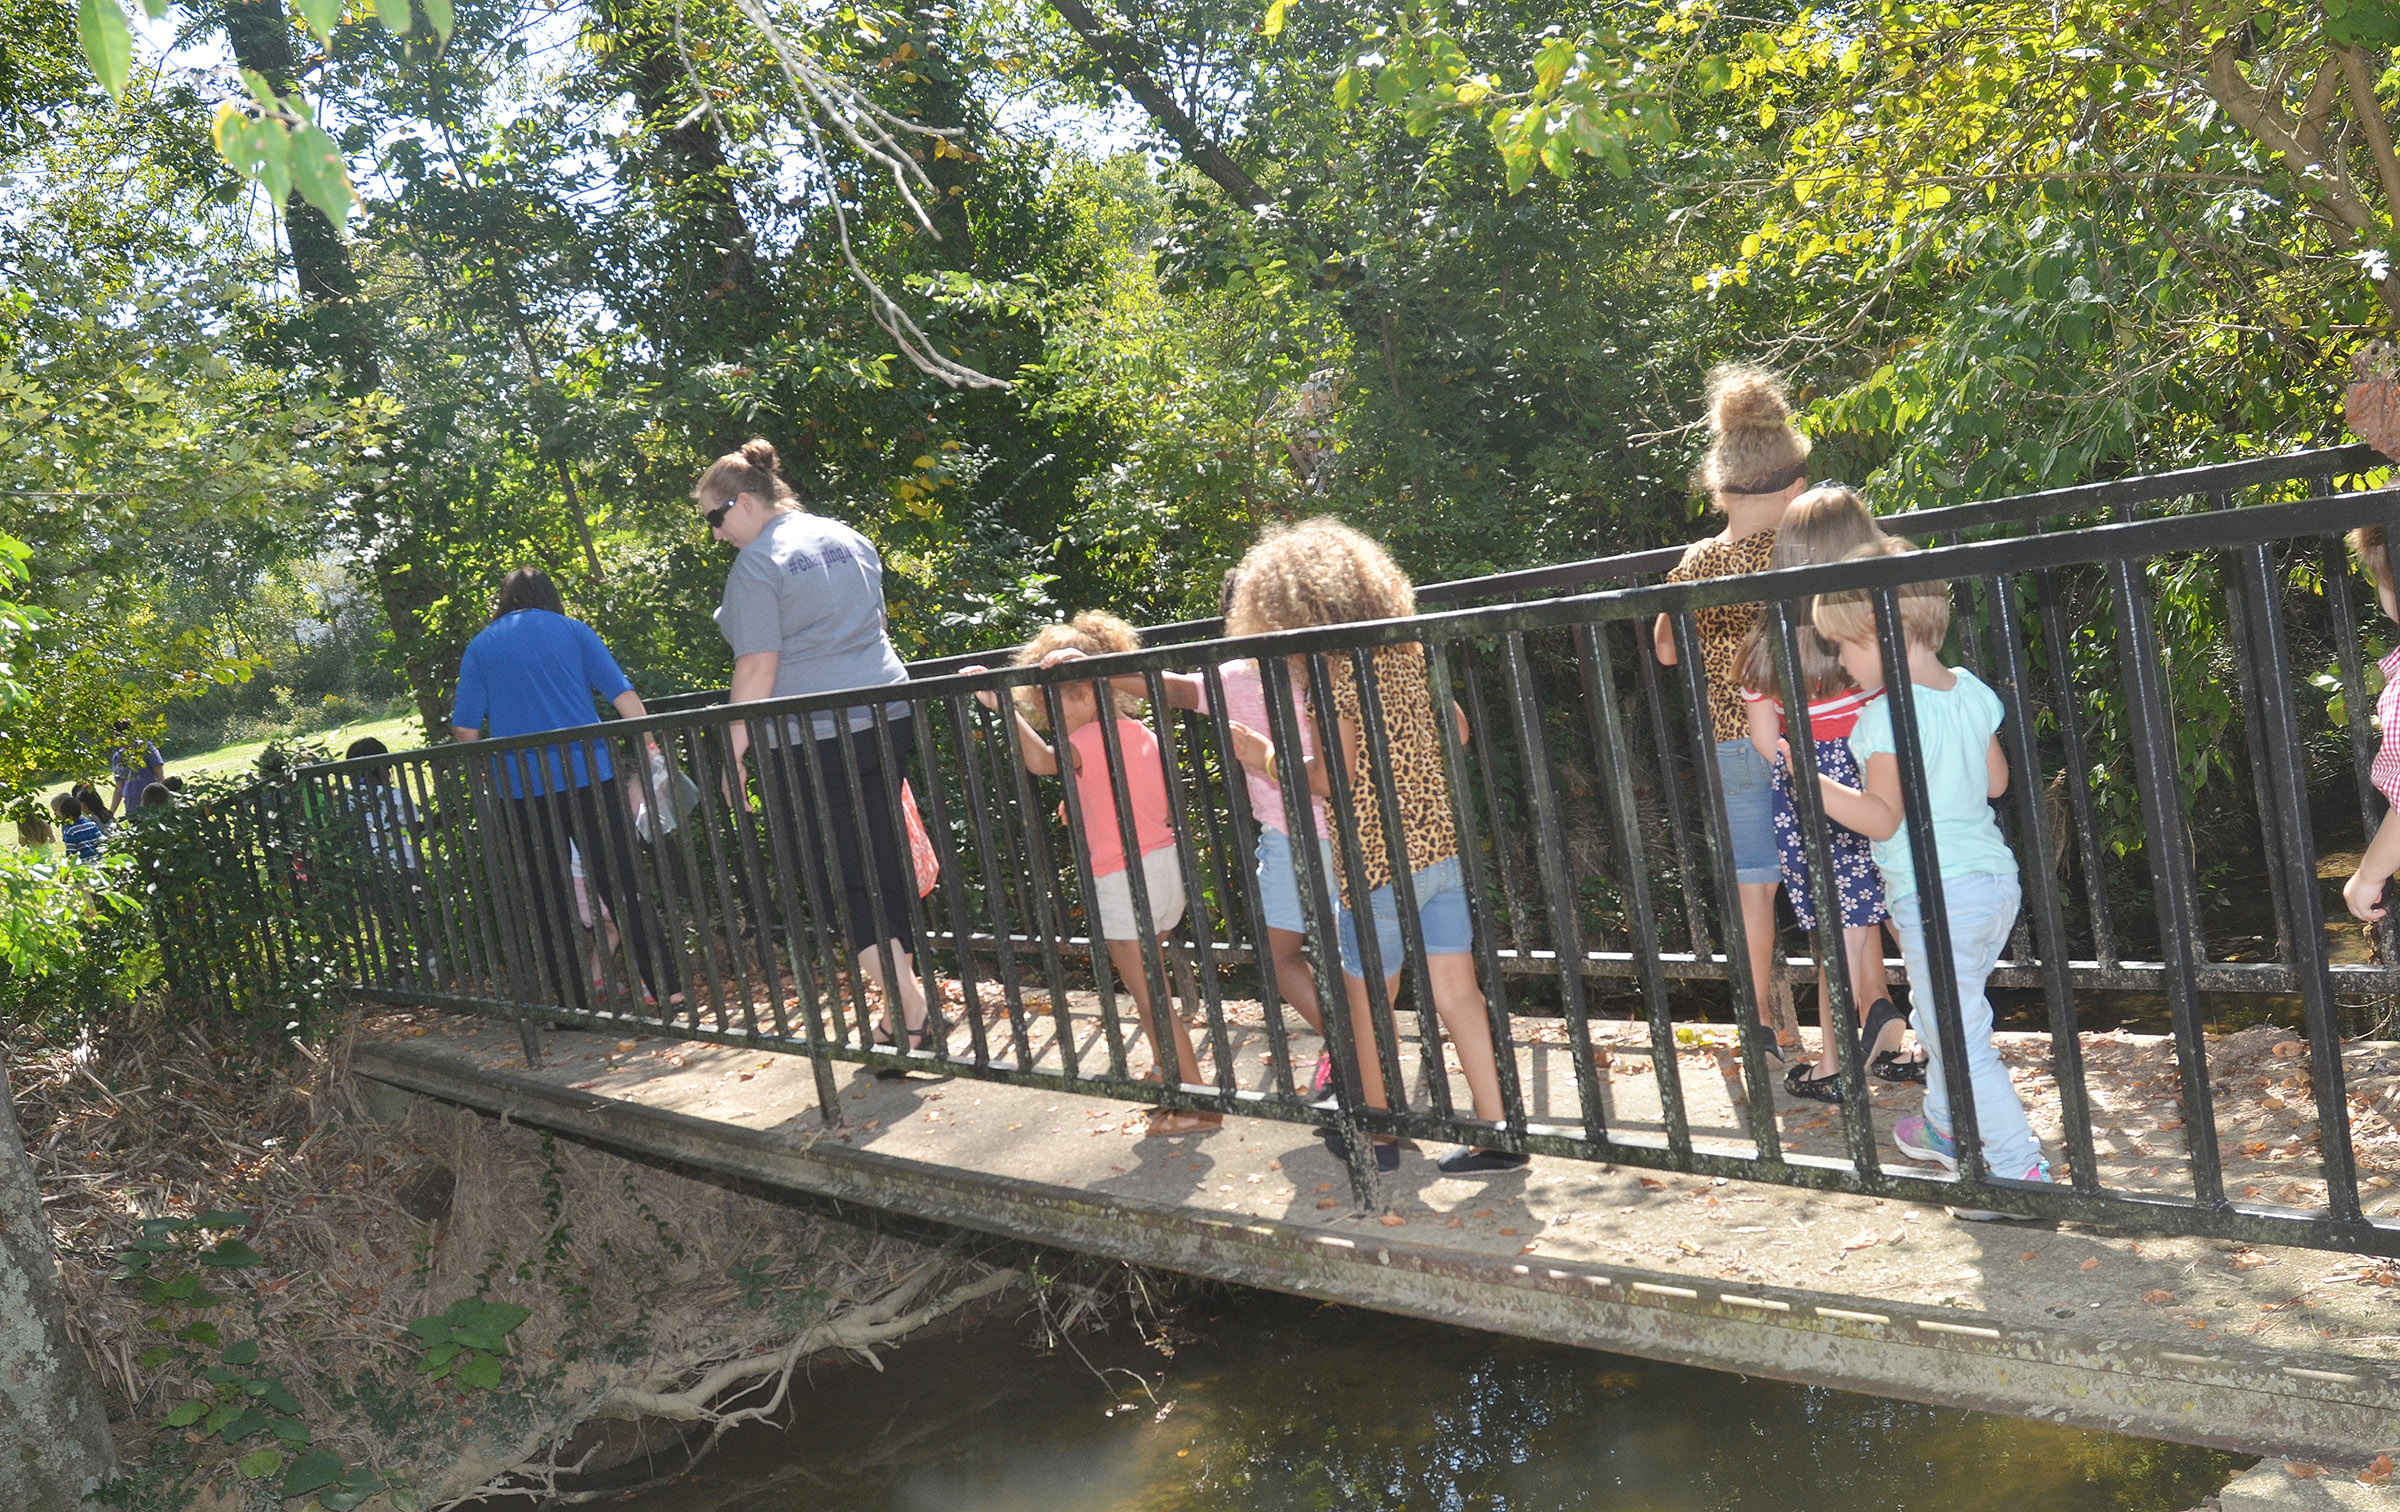 CES preschool teachers Denise Spencer, at left, and Julie Shelton walk with their students across a bridge during their nature walk.